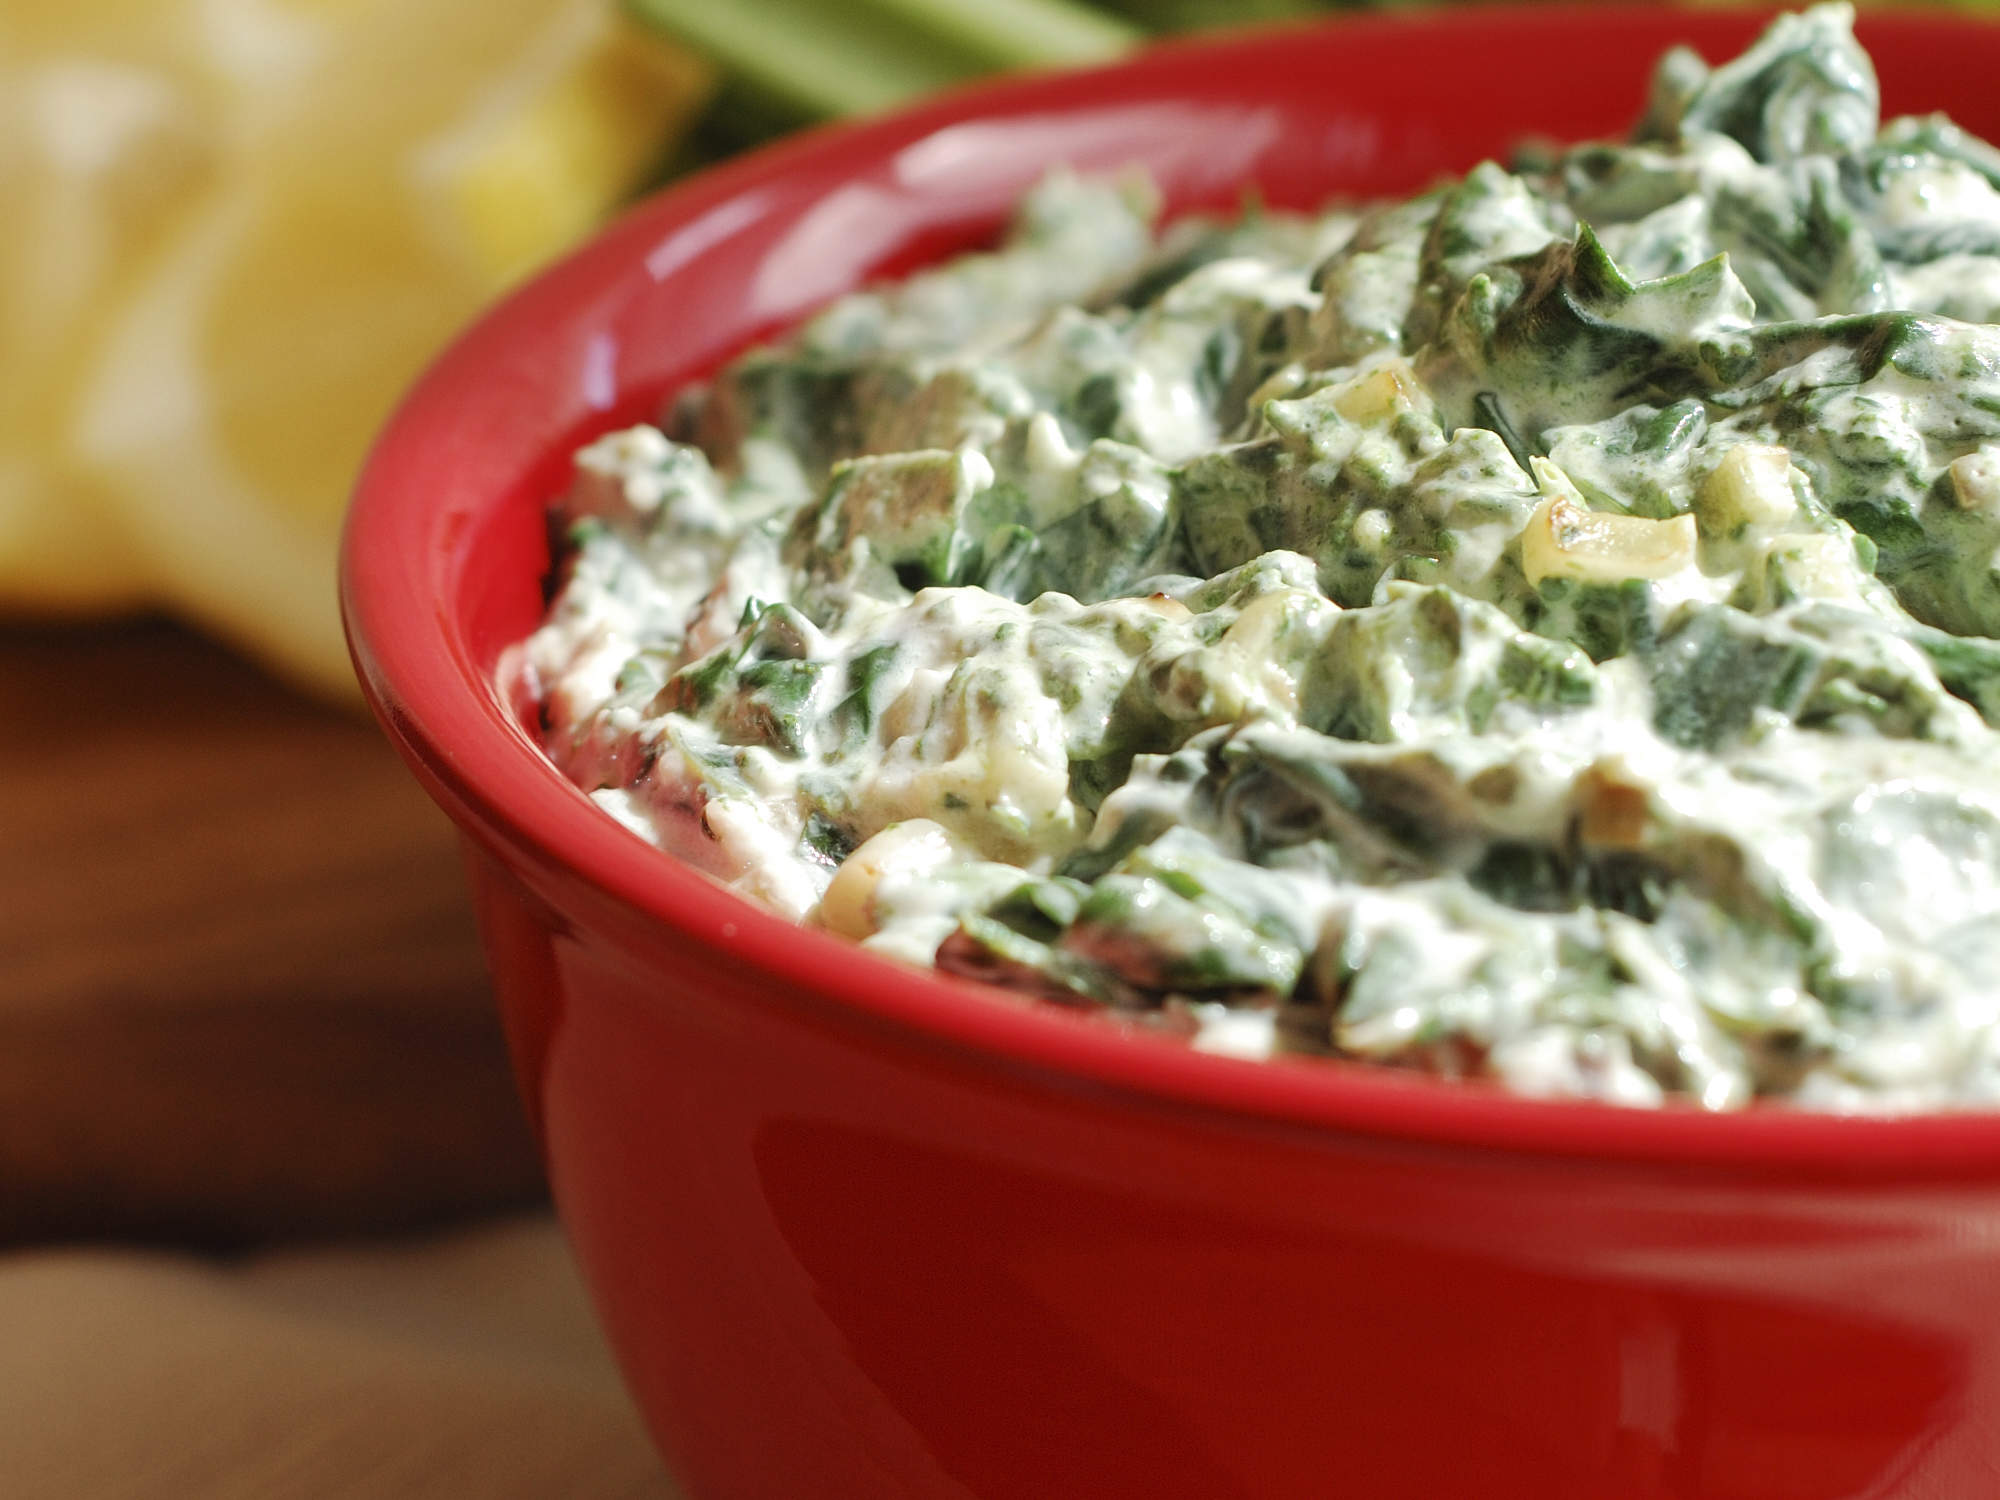 spinach and artichoke dip is unhealthy